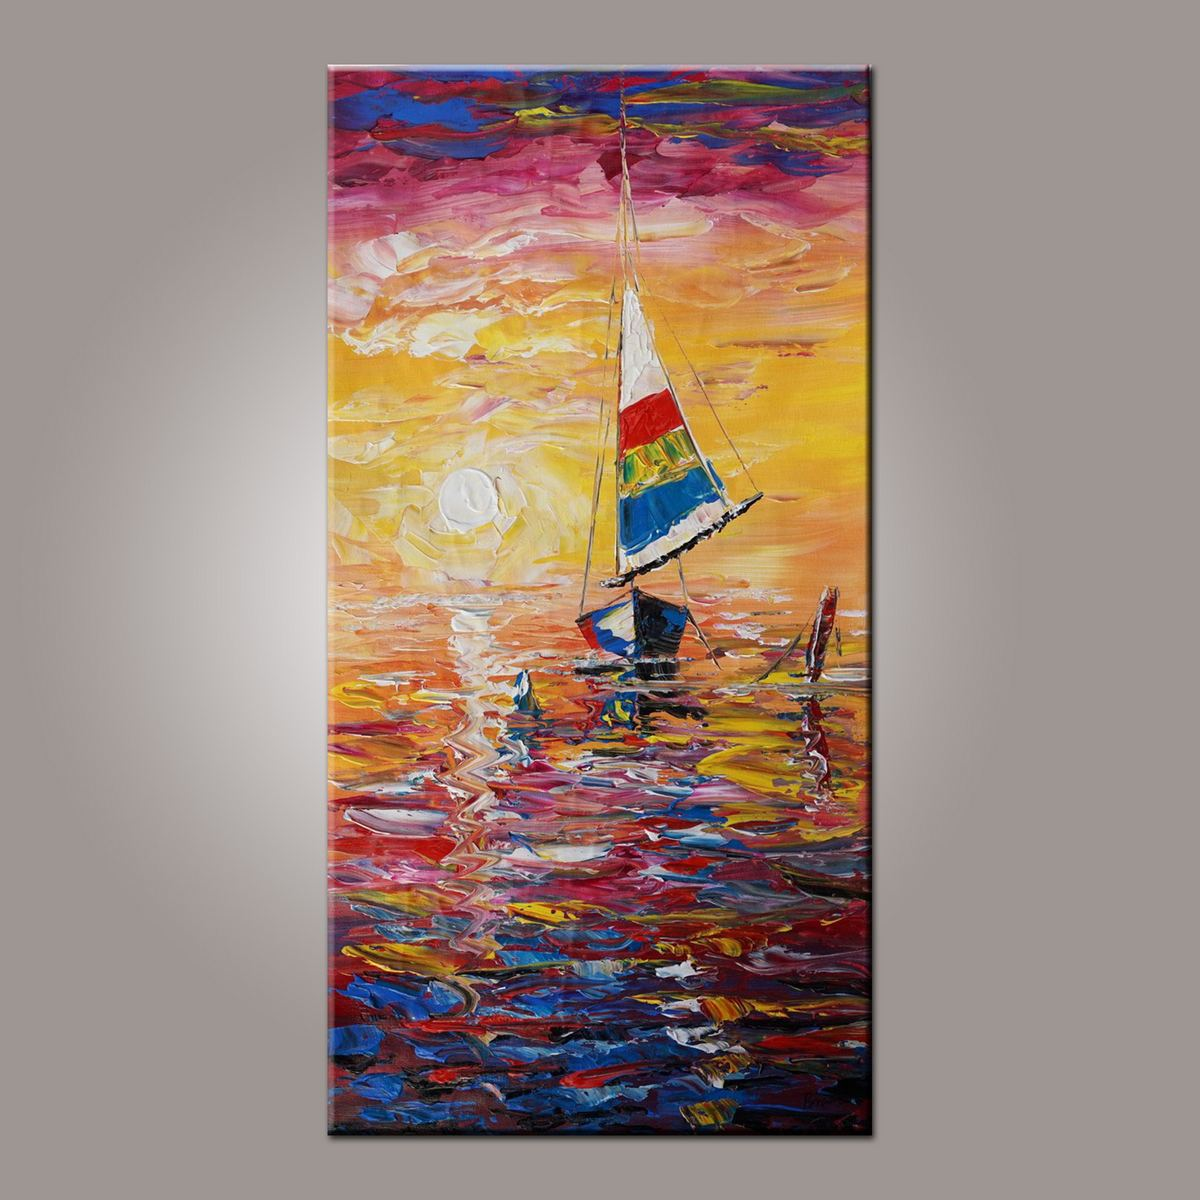 Wall Art, Art Painting, Contemporary Art, Boat Painting, Abstract Art, Abstract Art Painting, Living Room Wall Art, Canvas Art-Paintingforhome